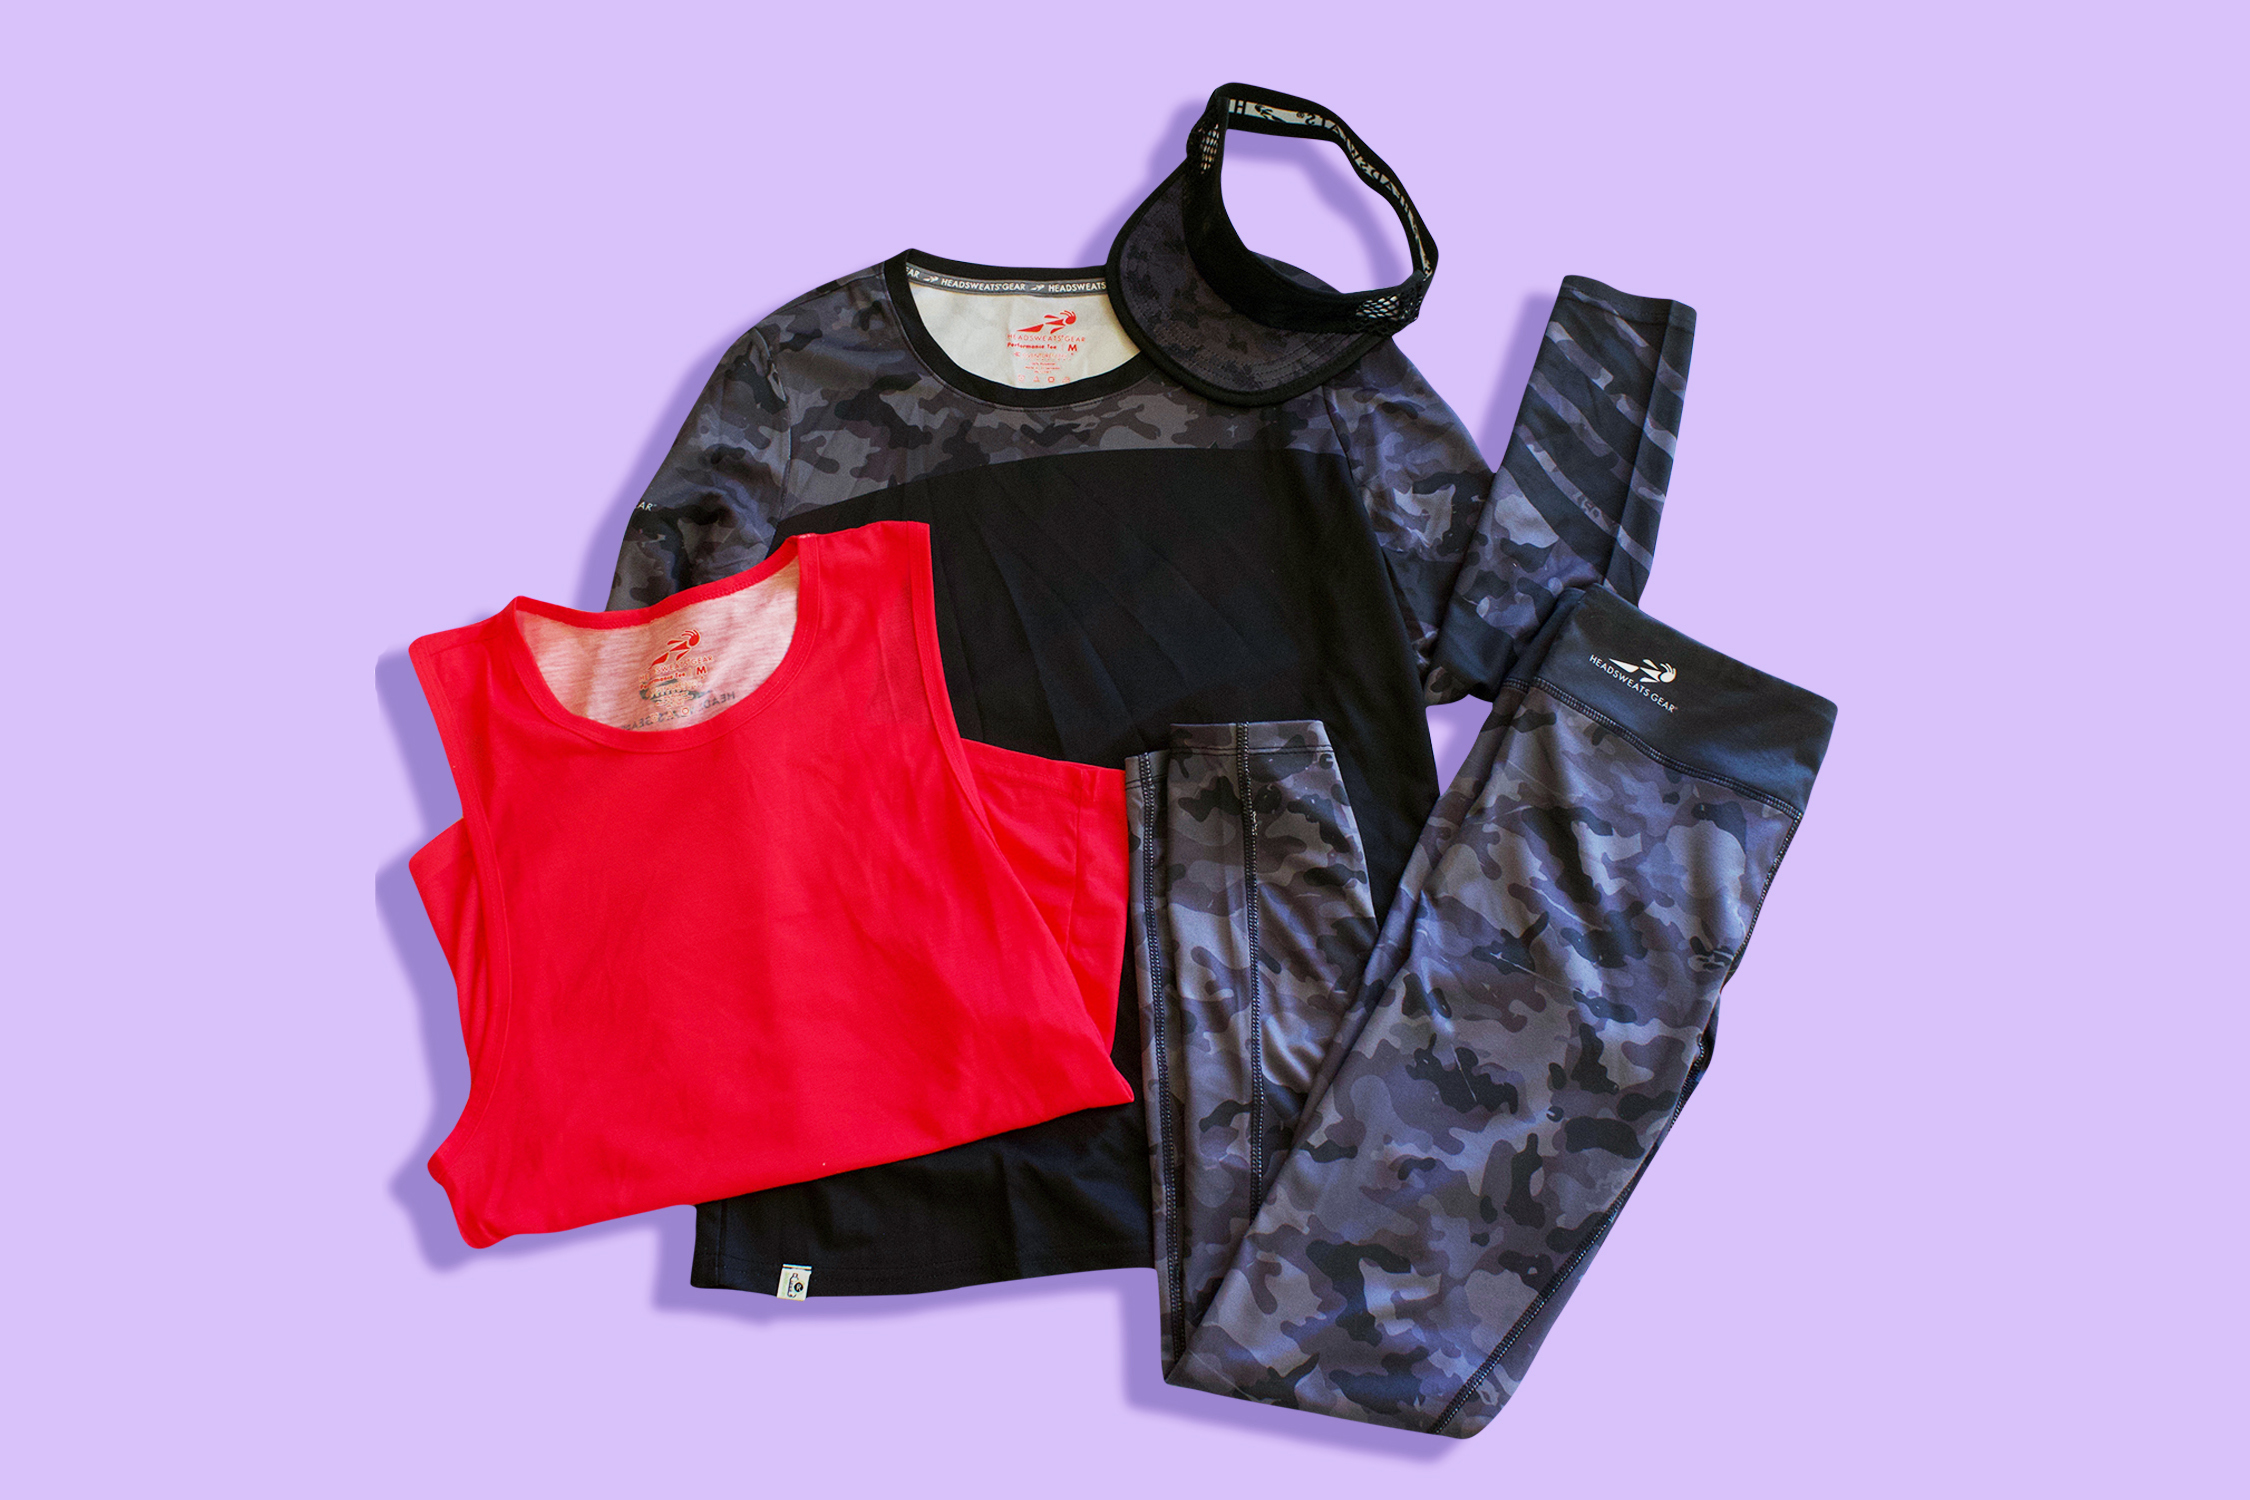 Headsweats Active Line pieces in Dark Camo and pink folded on flat surface against purple background